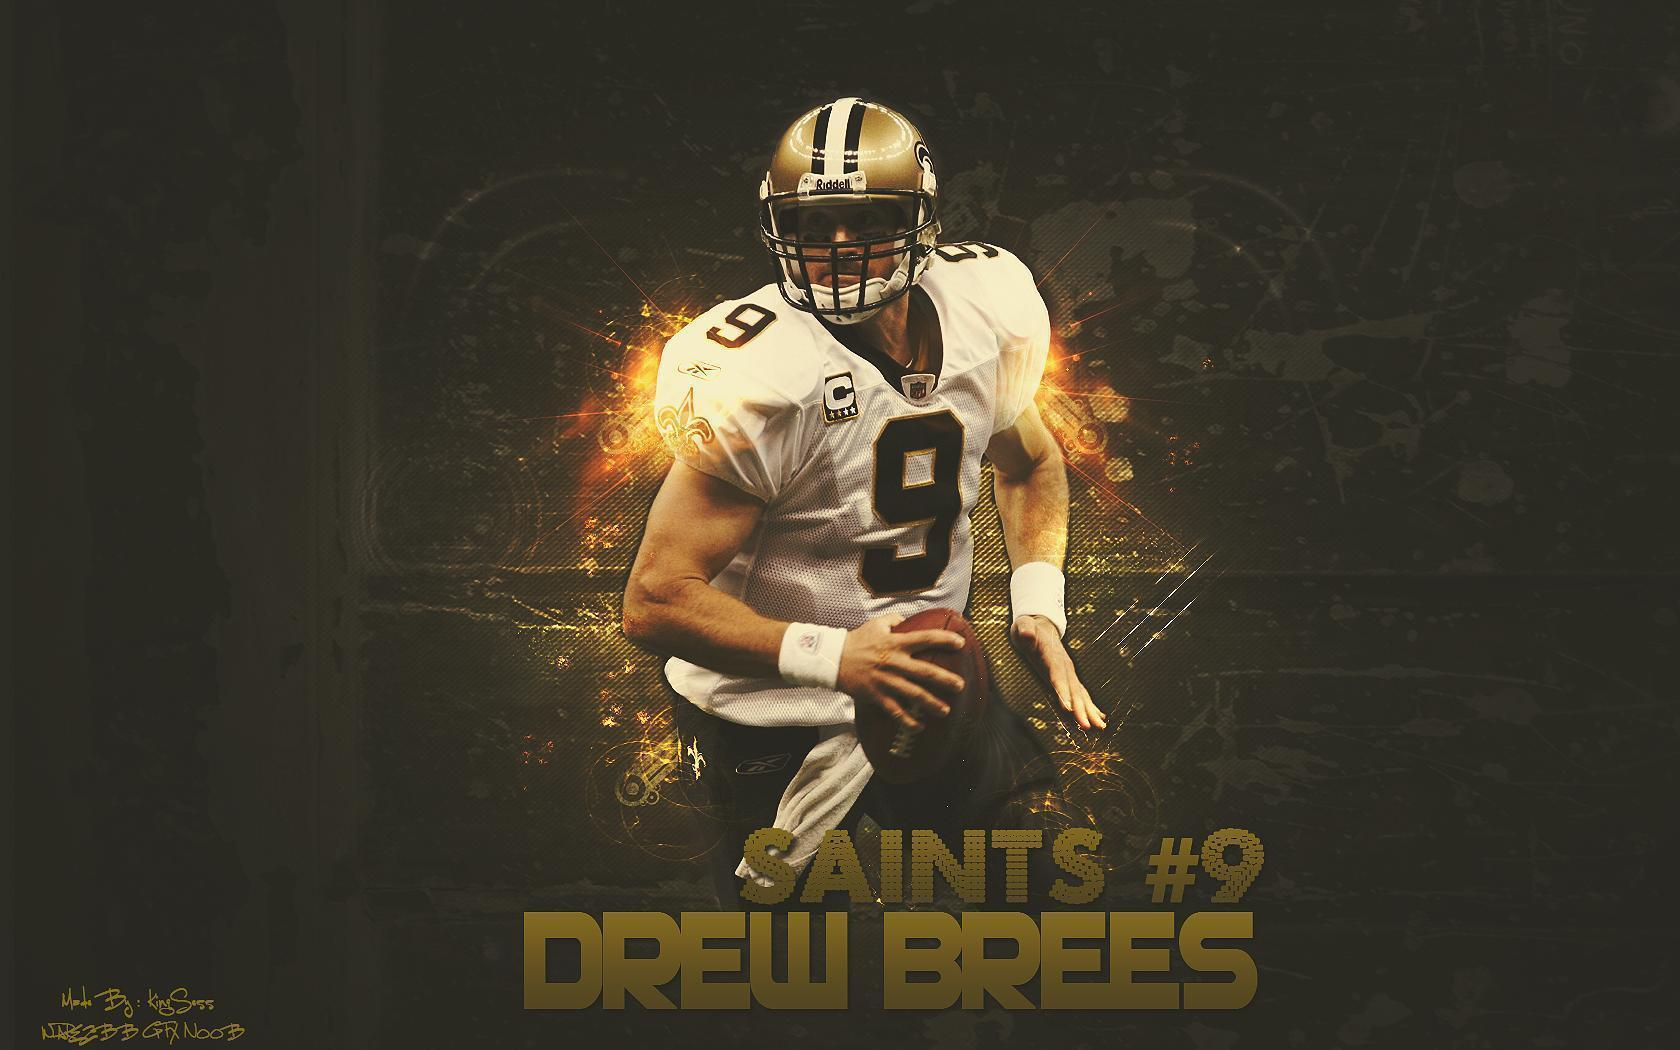 Drew Brees Wallpapers Wallpaper Cave